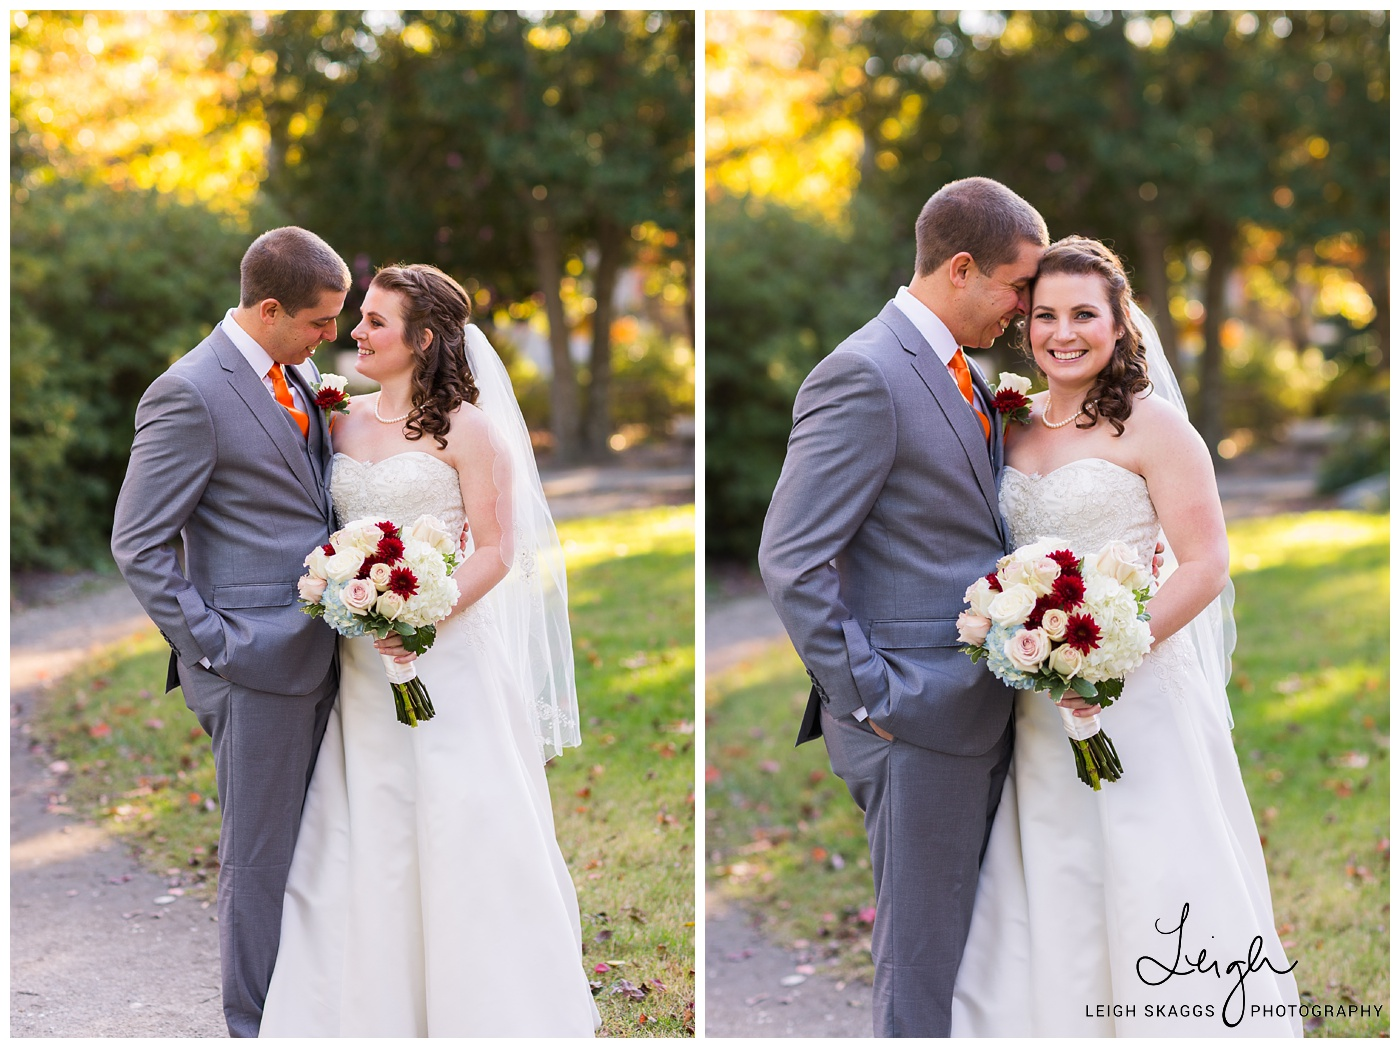 Nicole & Eric | Mariners Museum Fall Wedding